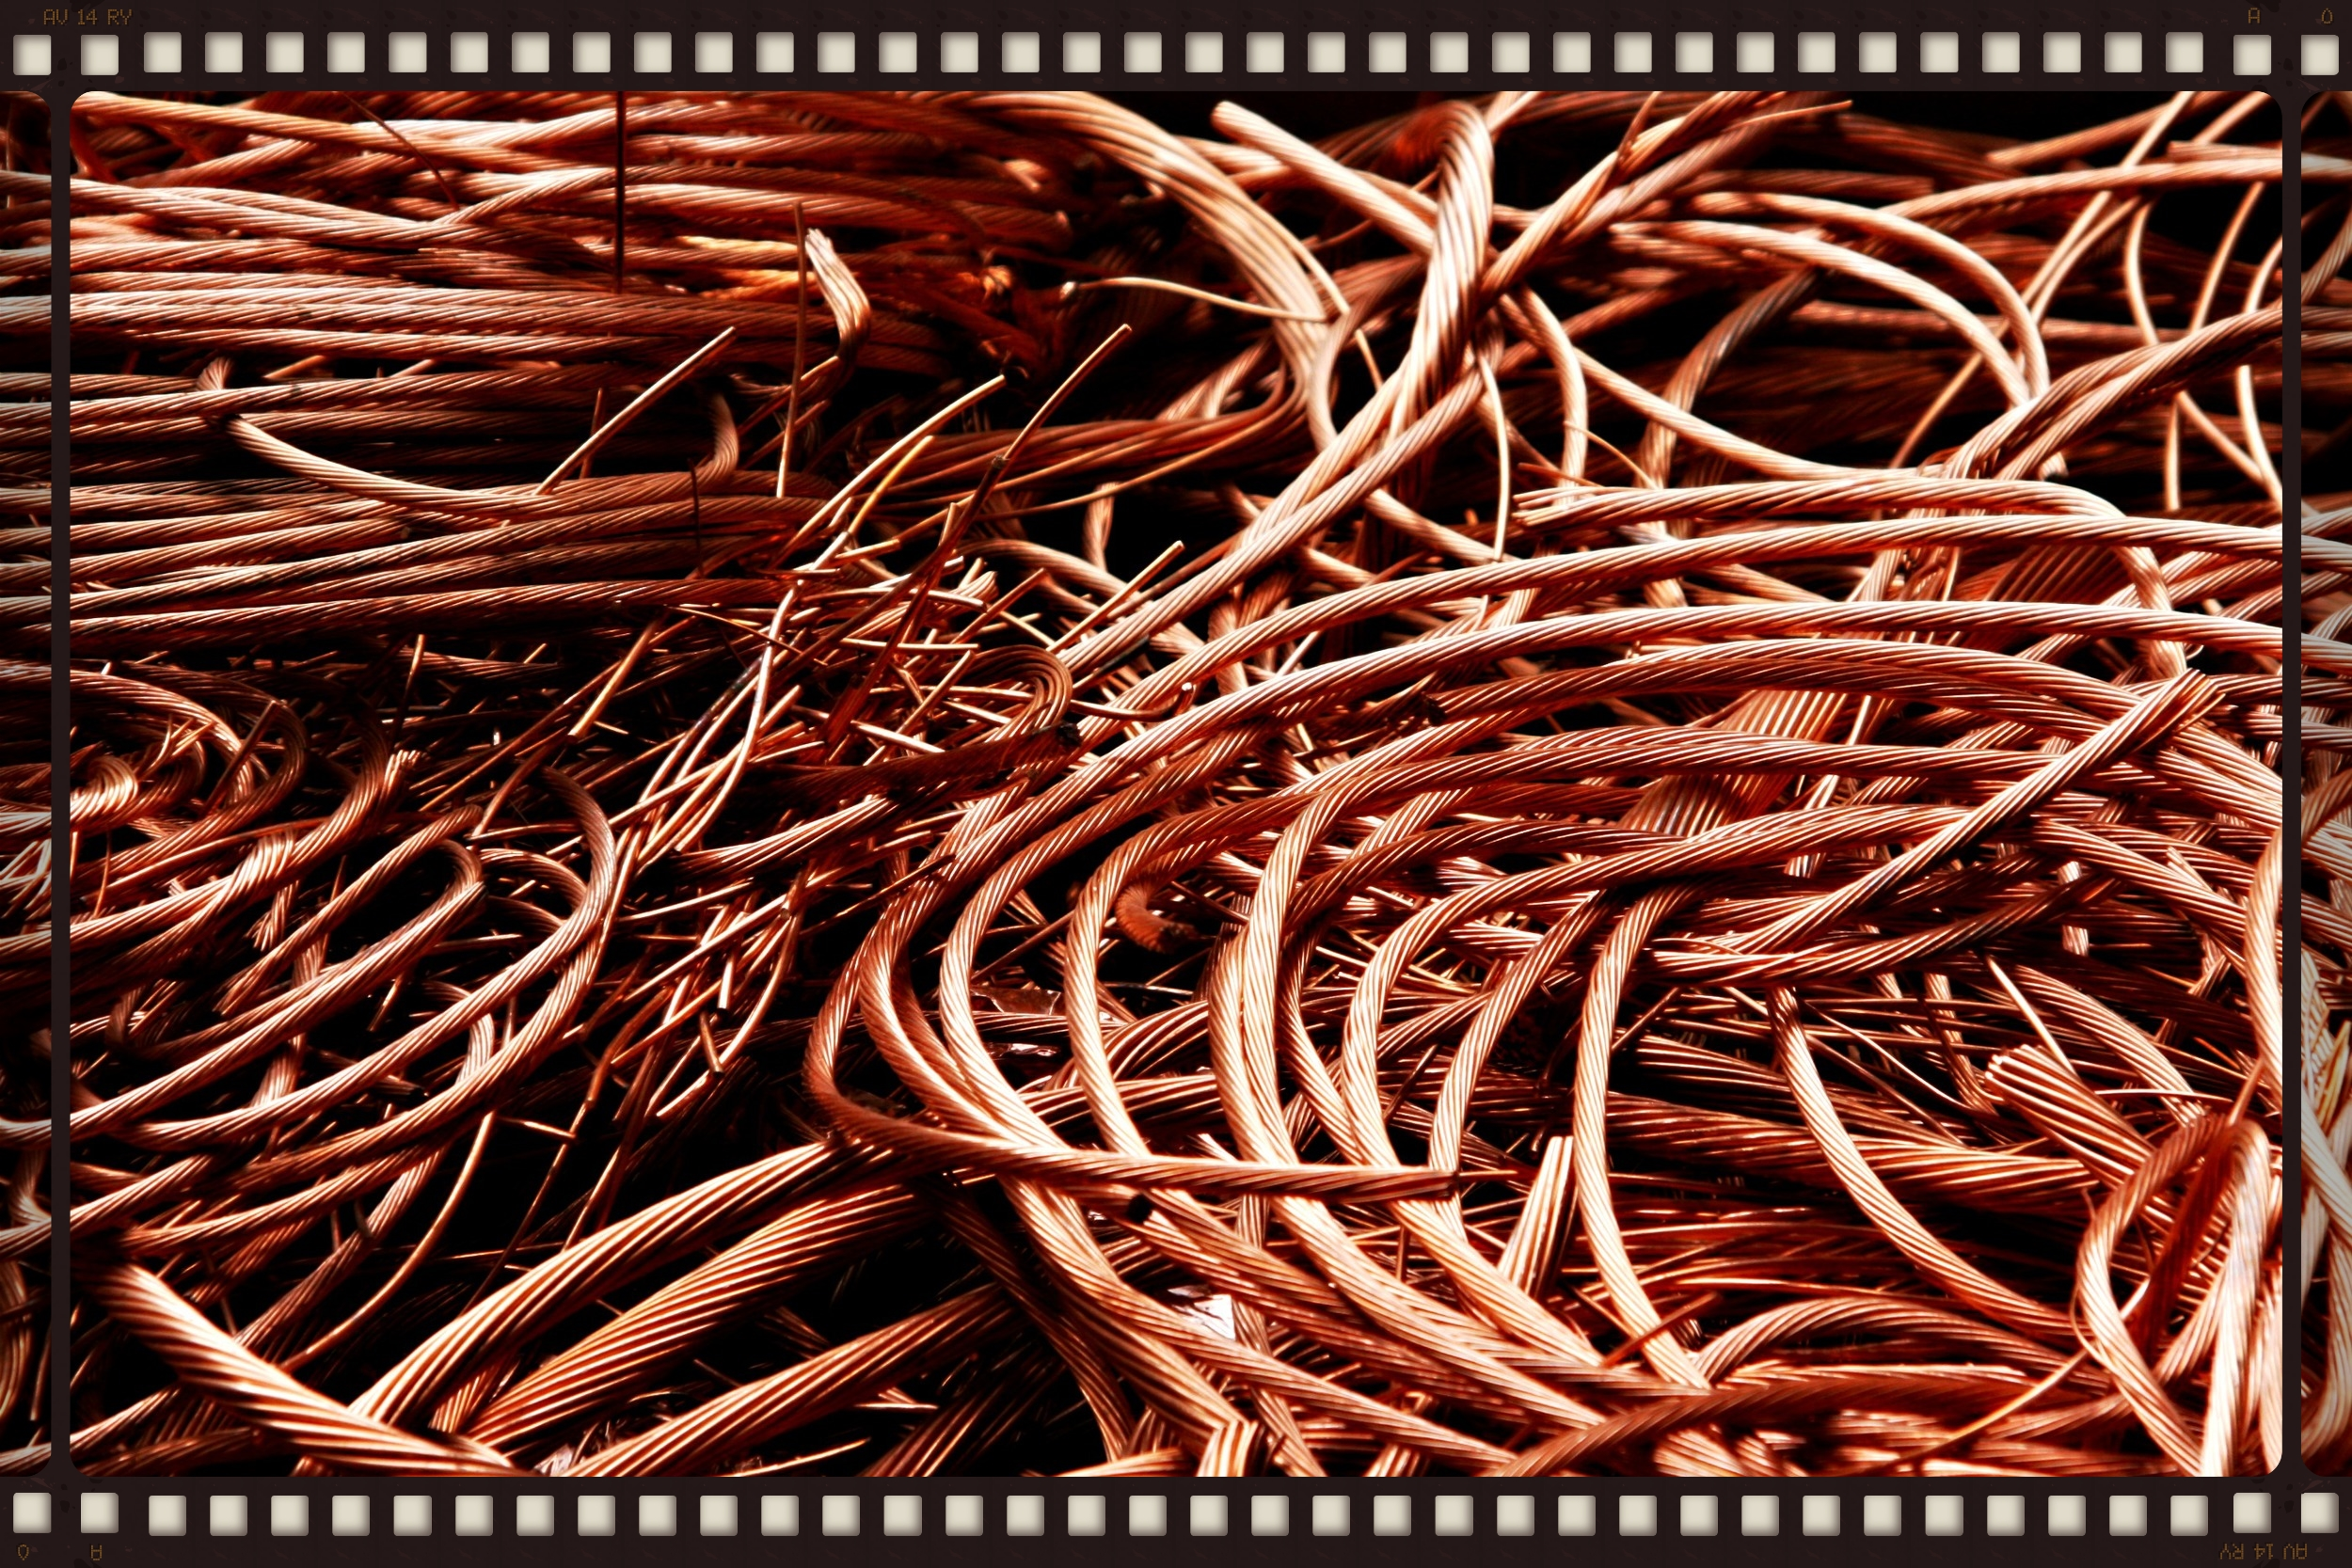 sgplumbingandgasservices_co_uk_copper_pipes_Fotolia_58473601_M_cropped.jpg